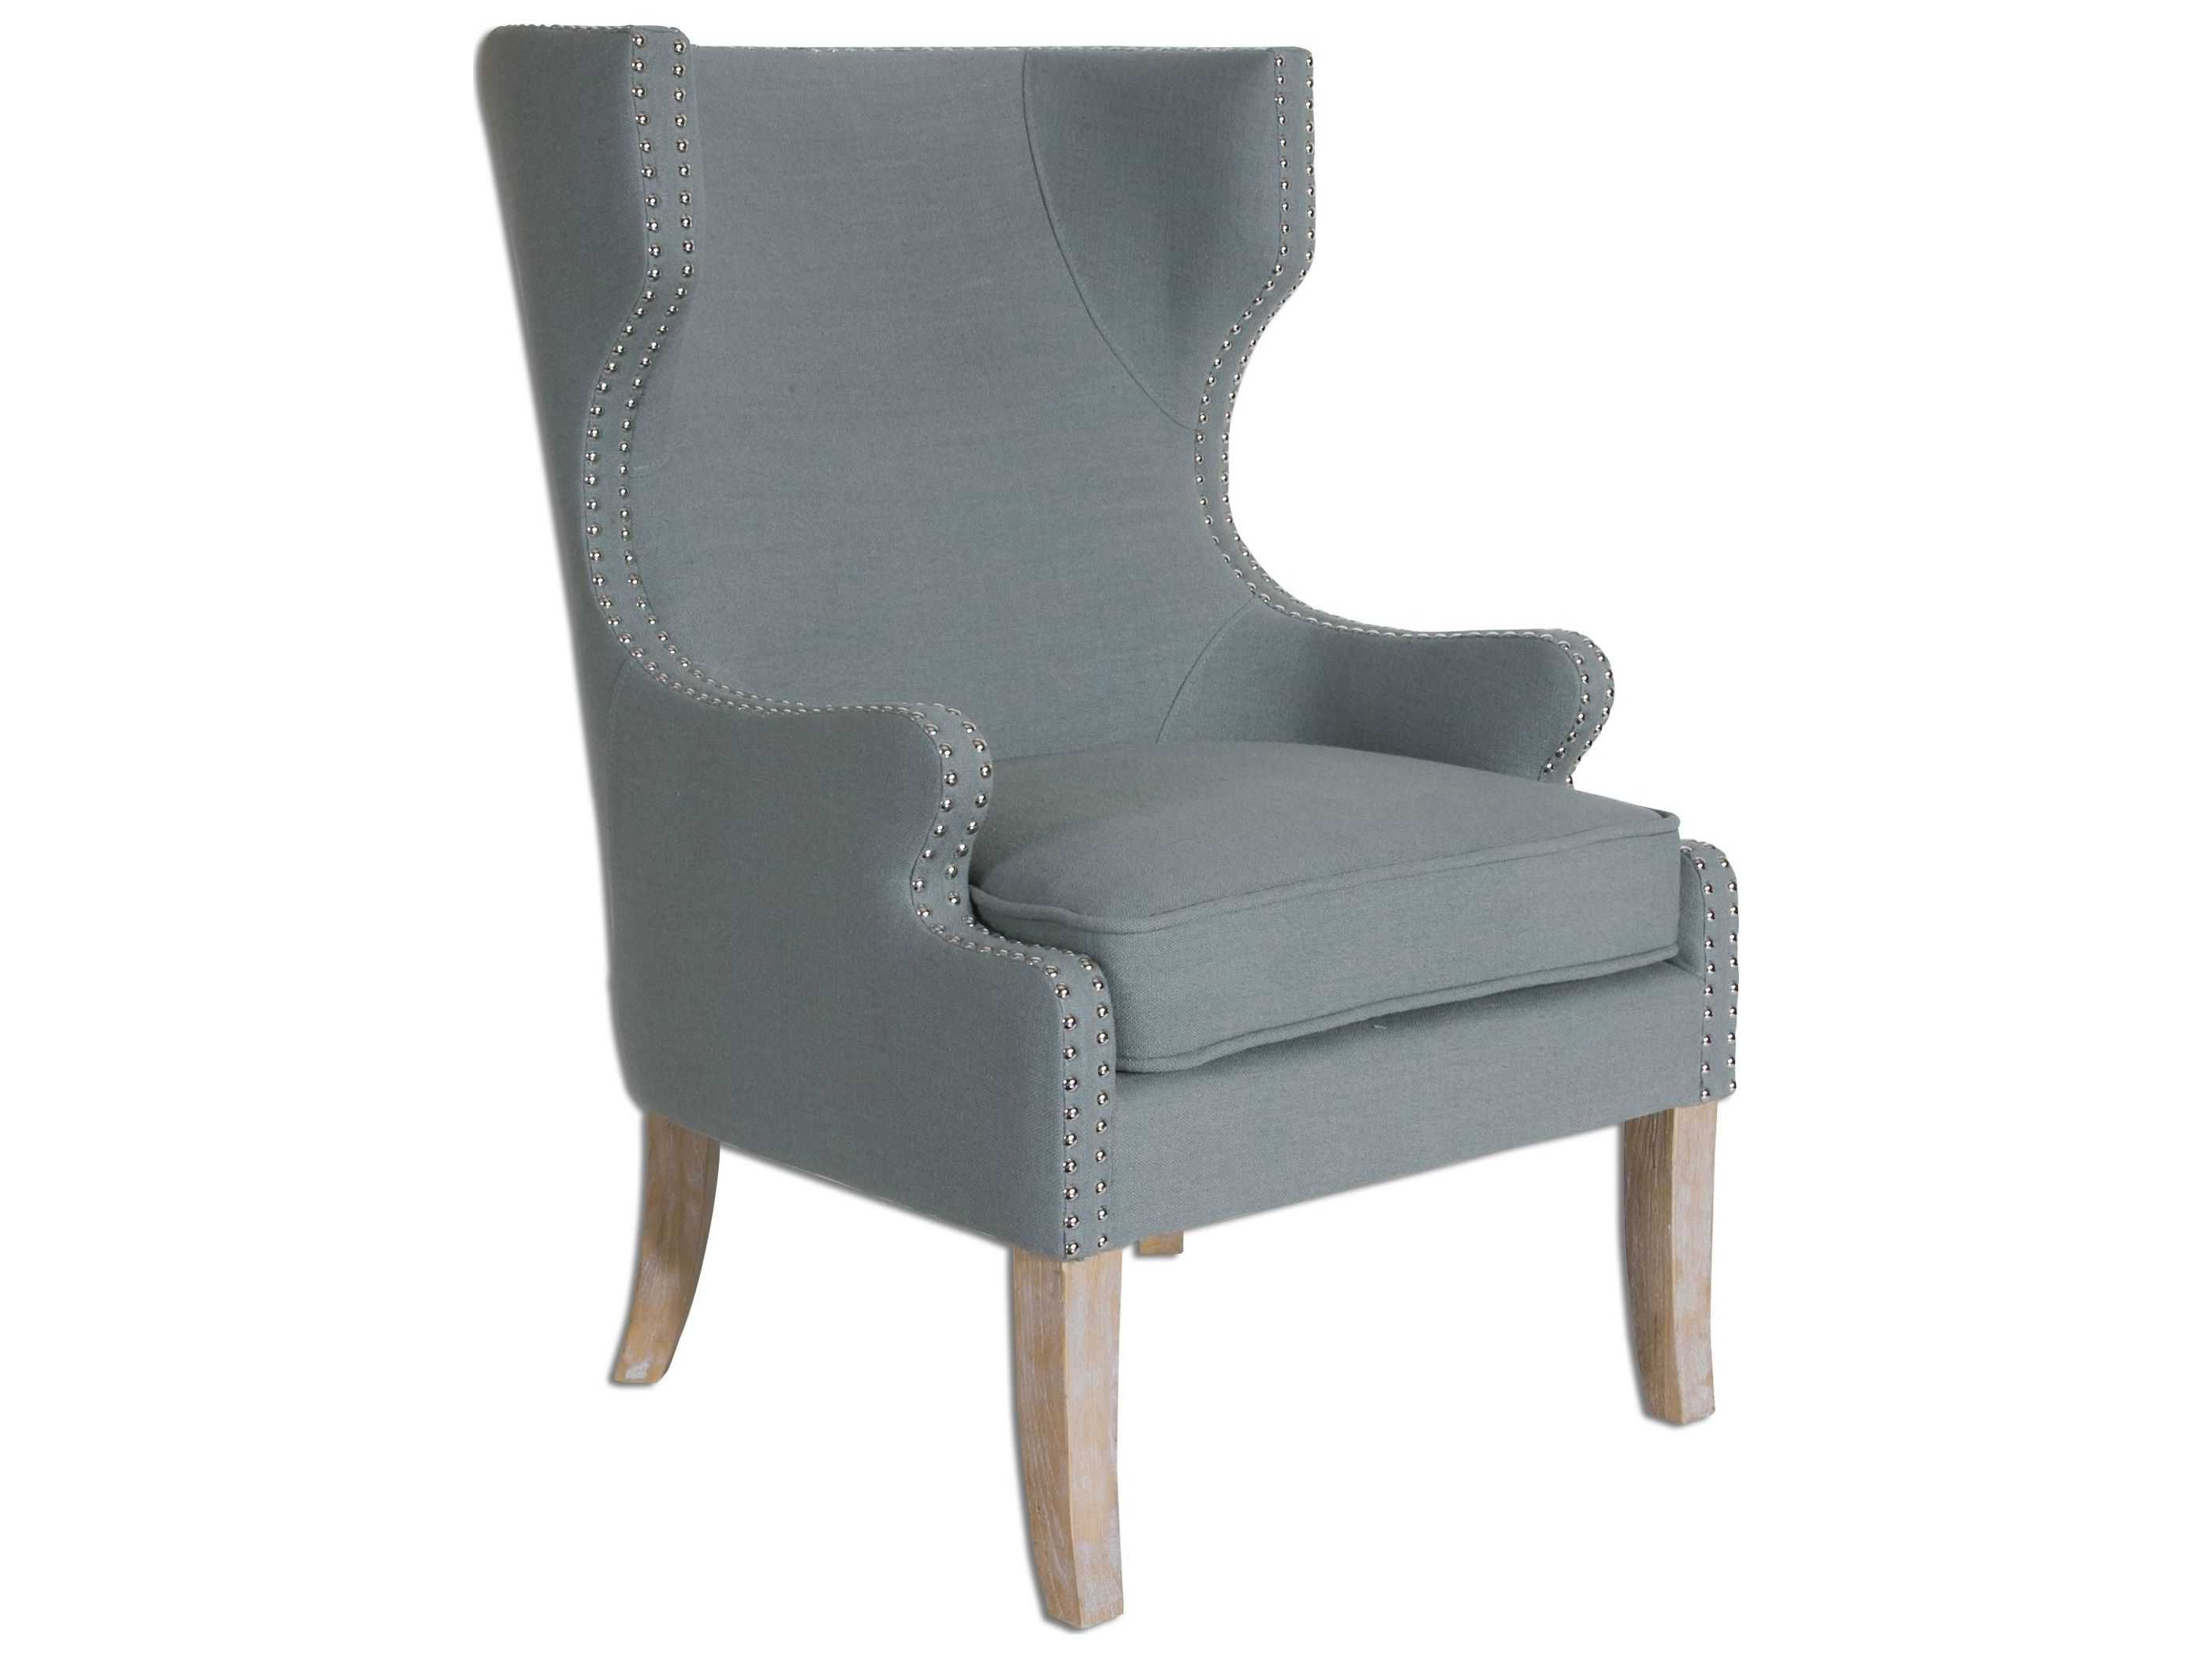 uttermost graycie high back wing accent chair ut23136. Black Bedroom Furniture Sets. Home Design Ideas